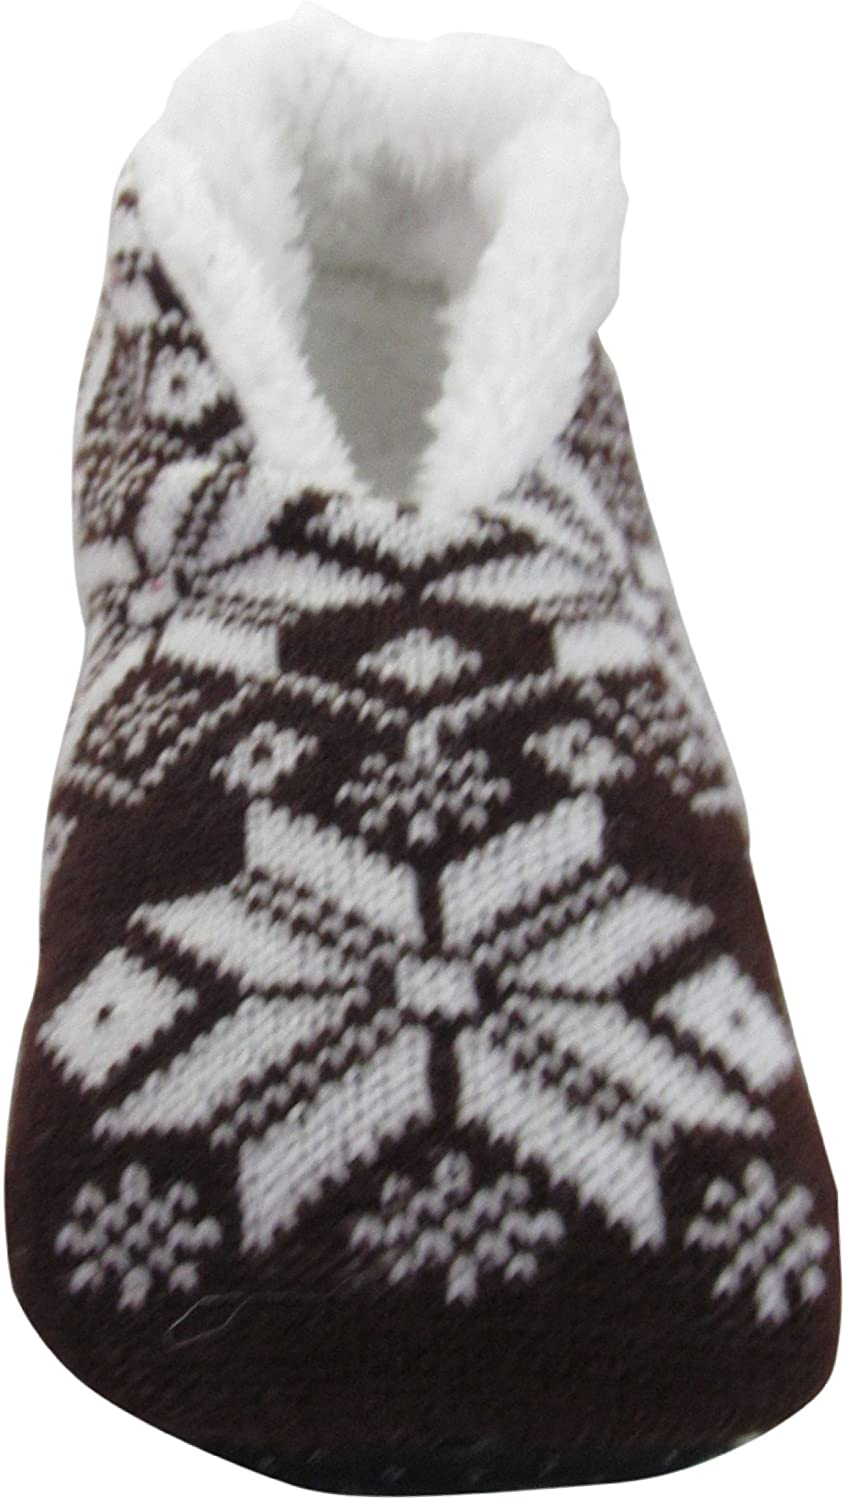 J.Ann Adults Snowflake Sherpa lined Slipper Socks with non Slip Bottom Foot Size:25-26cm. Coffee